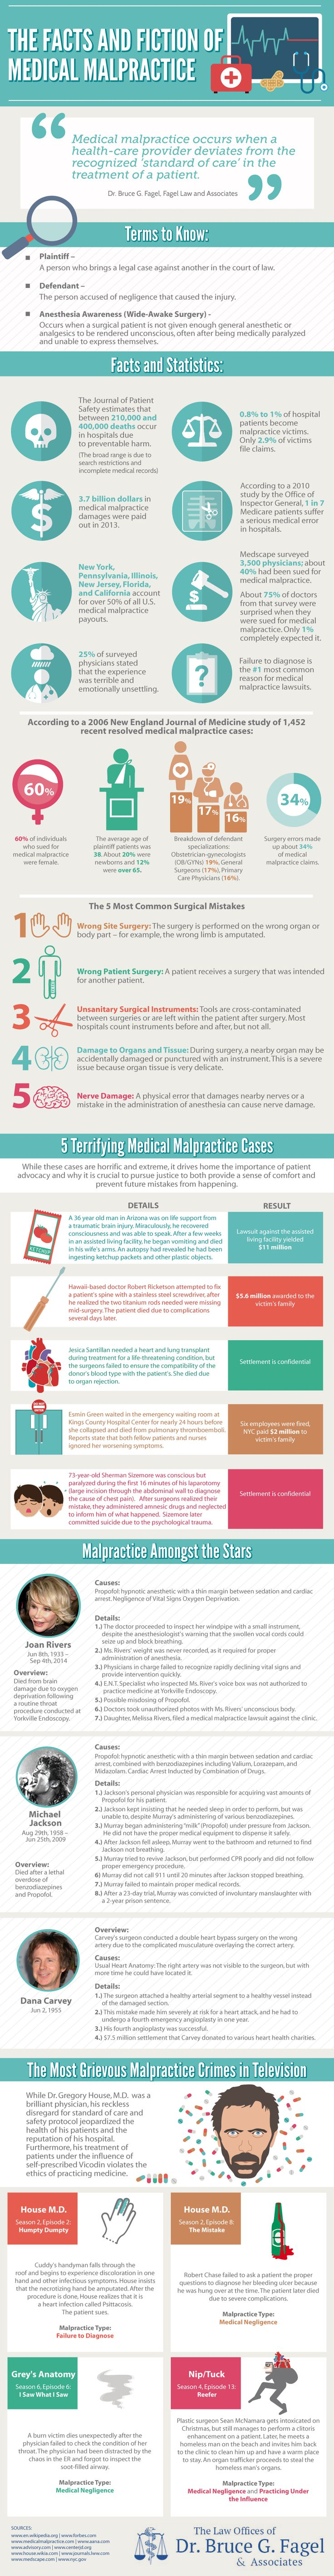 The Facts and Fiction of Medical Malpractice #infographic #Health #Medical